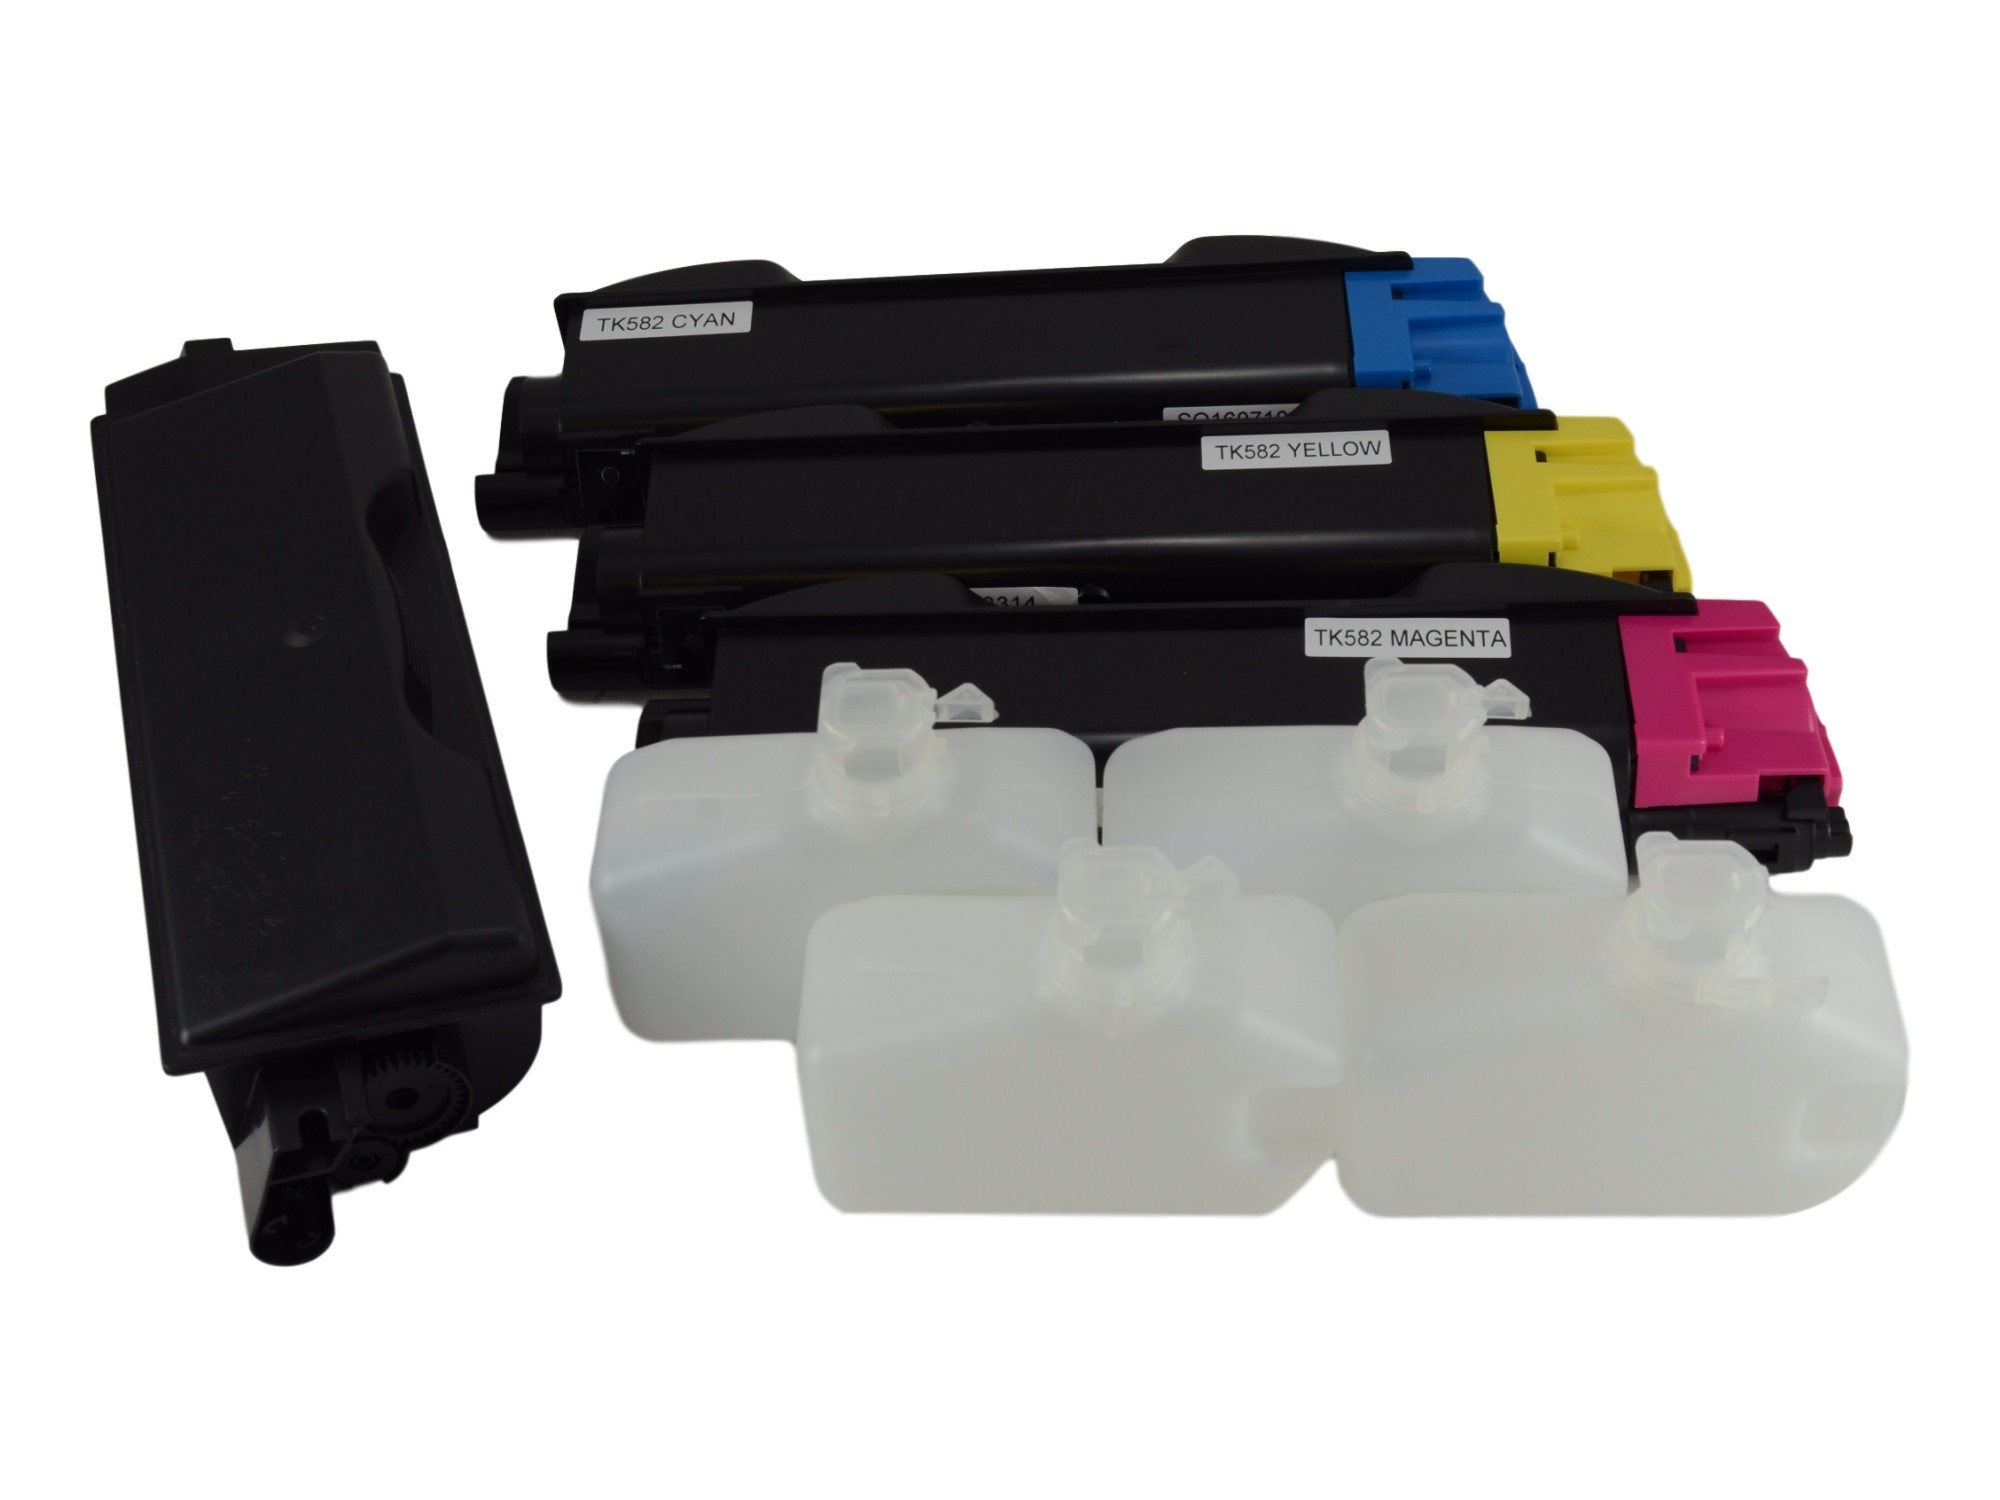 Kyocera TK-582K Color Toner Cartridge Set - KCMY 4 Pack